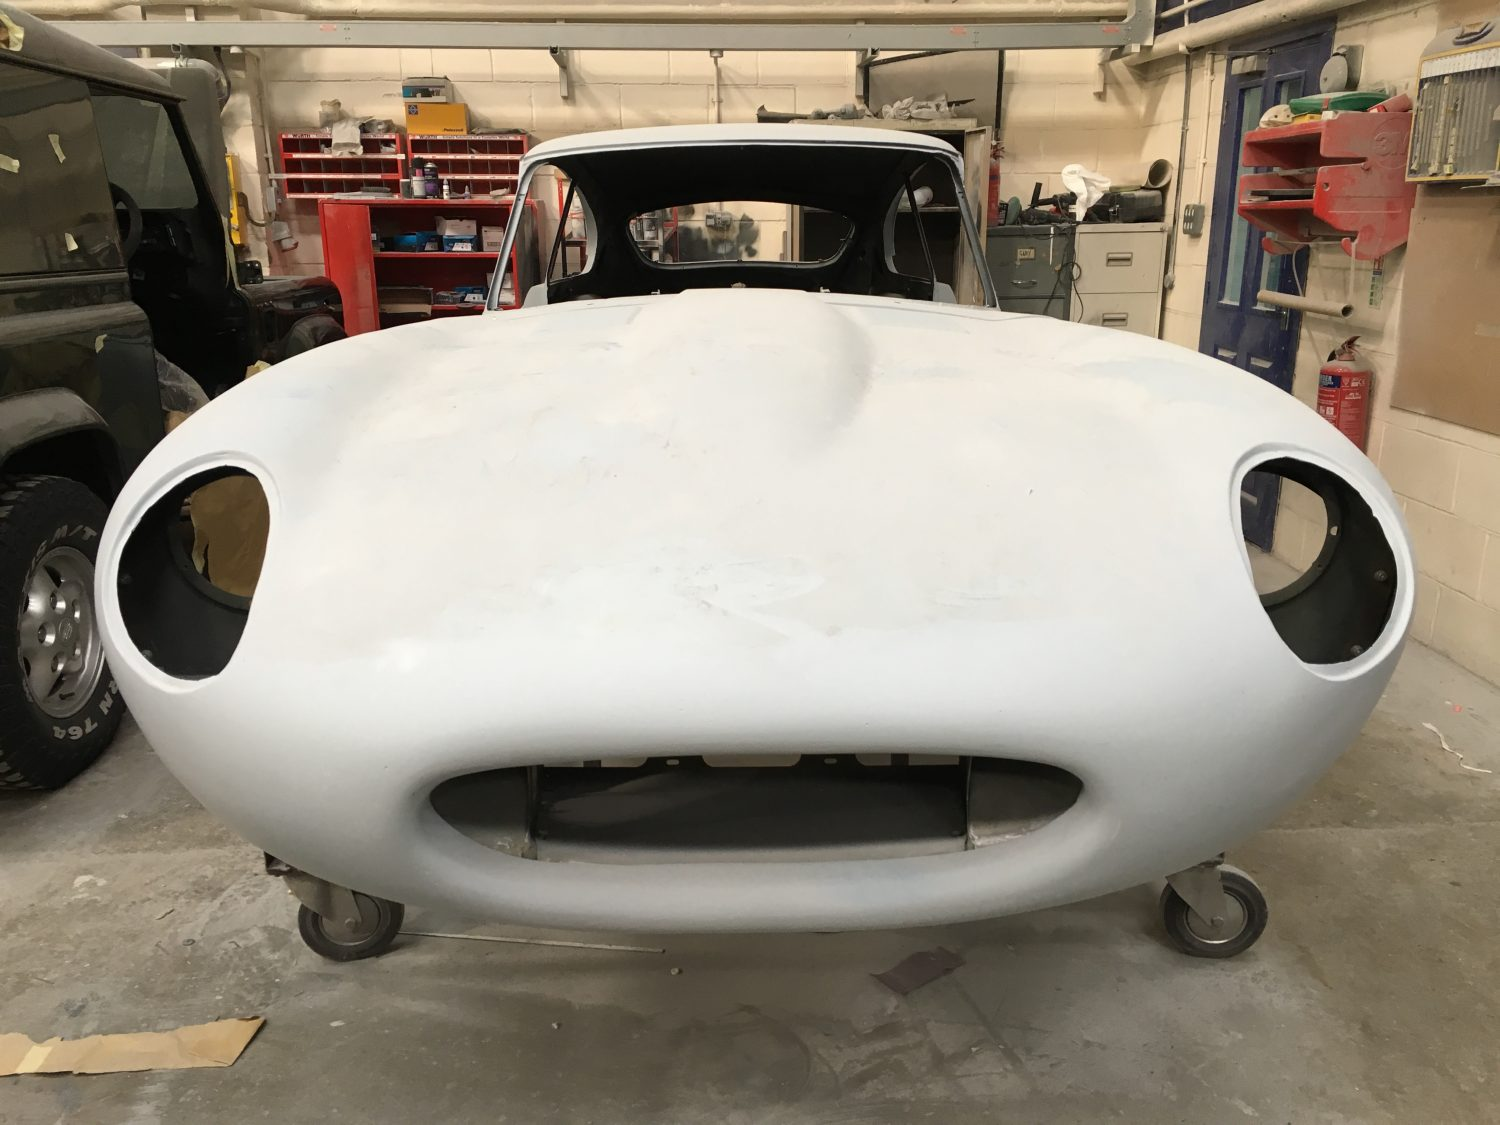 Our Jaguar E-Type primed and ready for paint